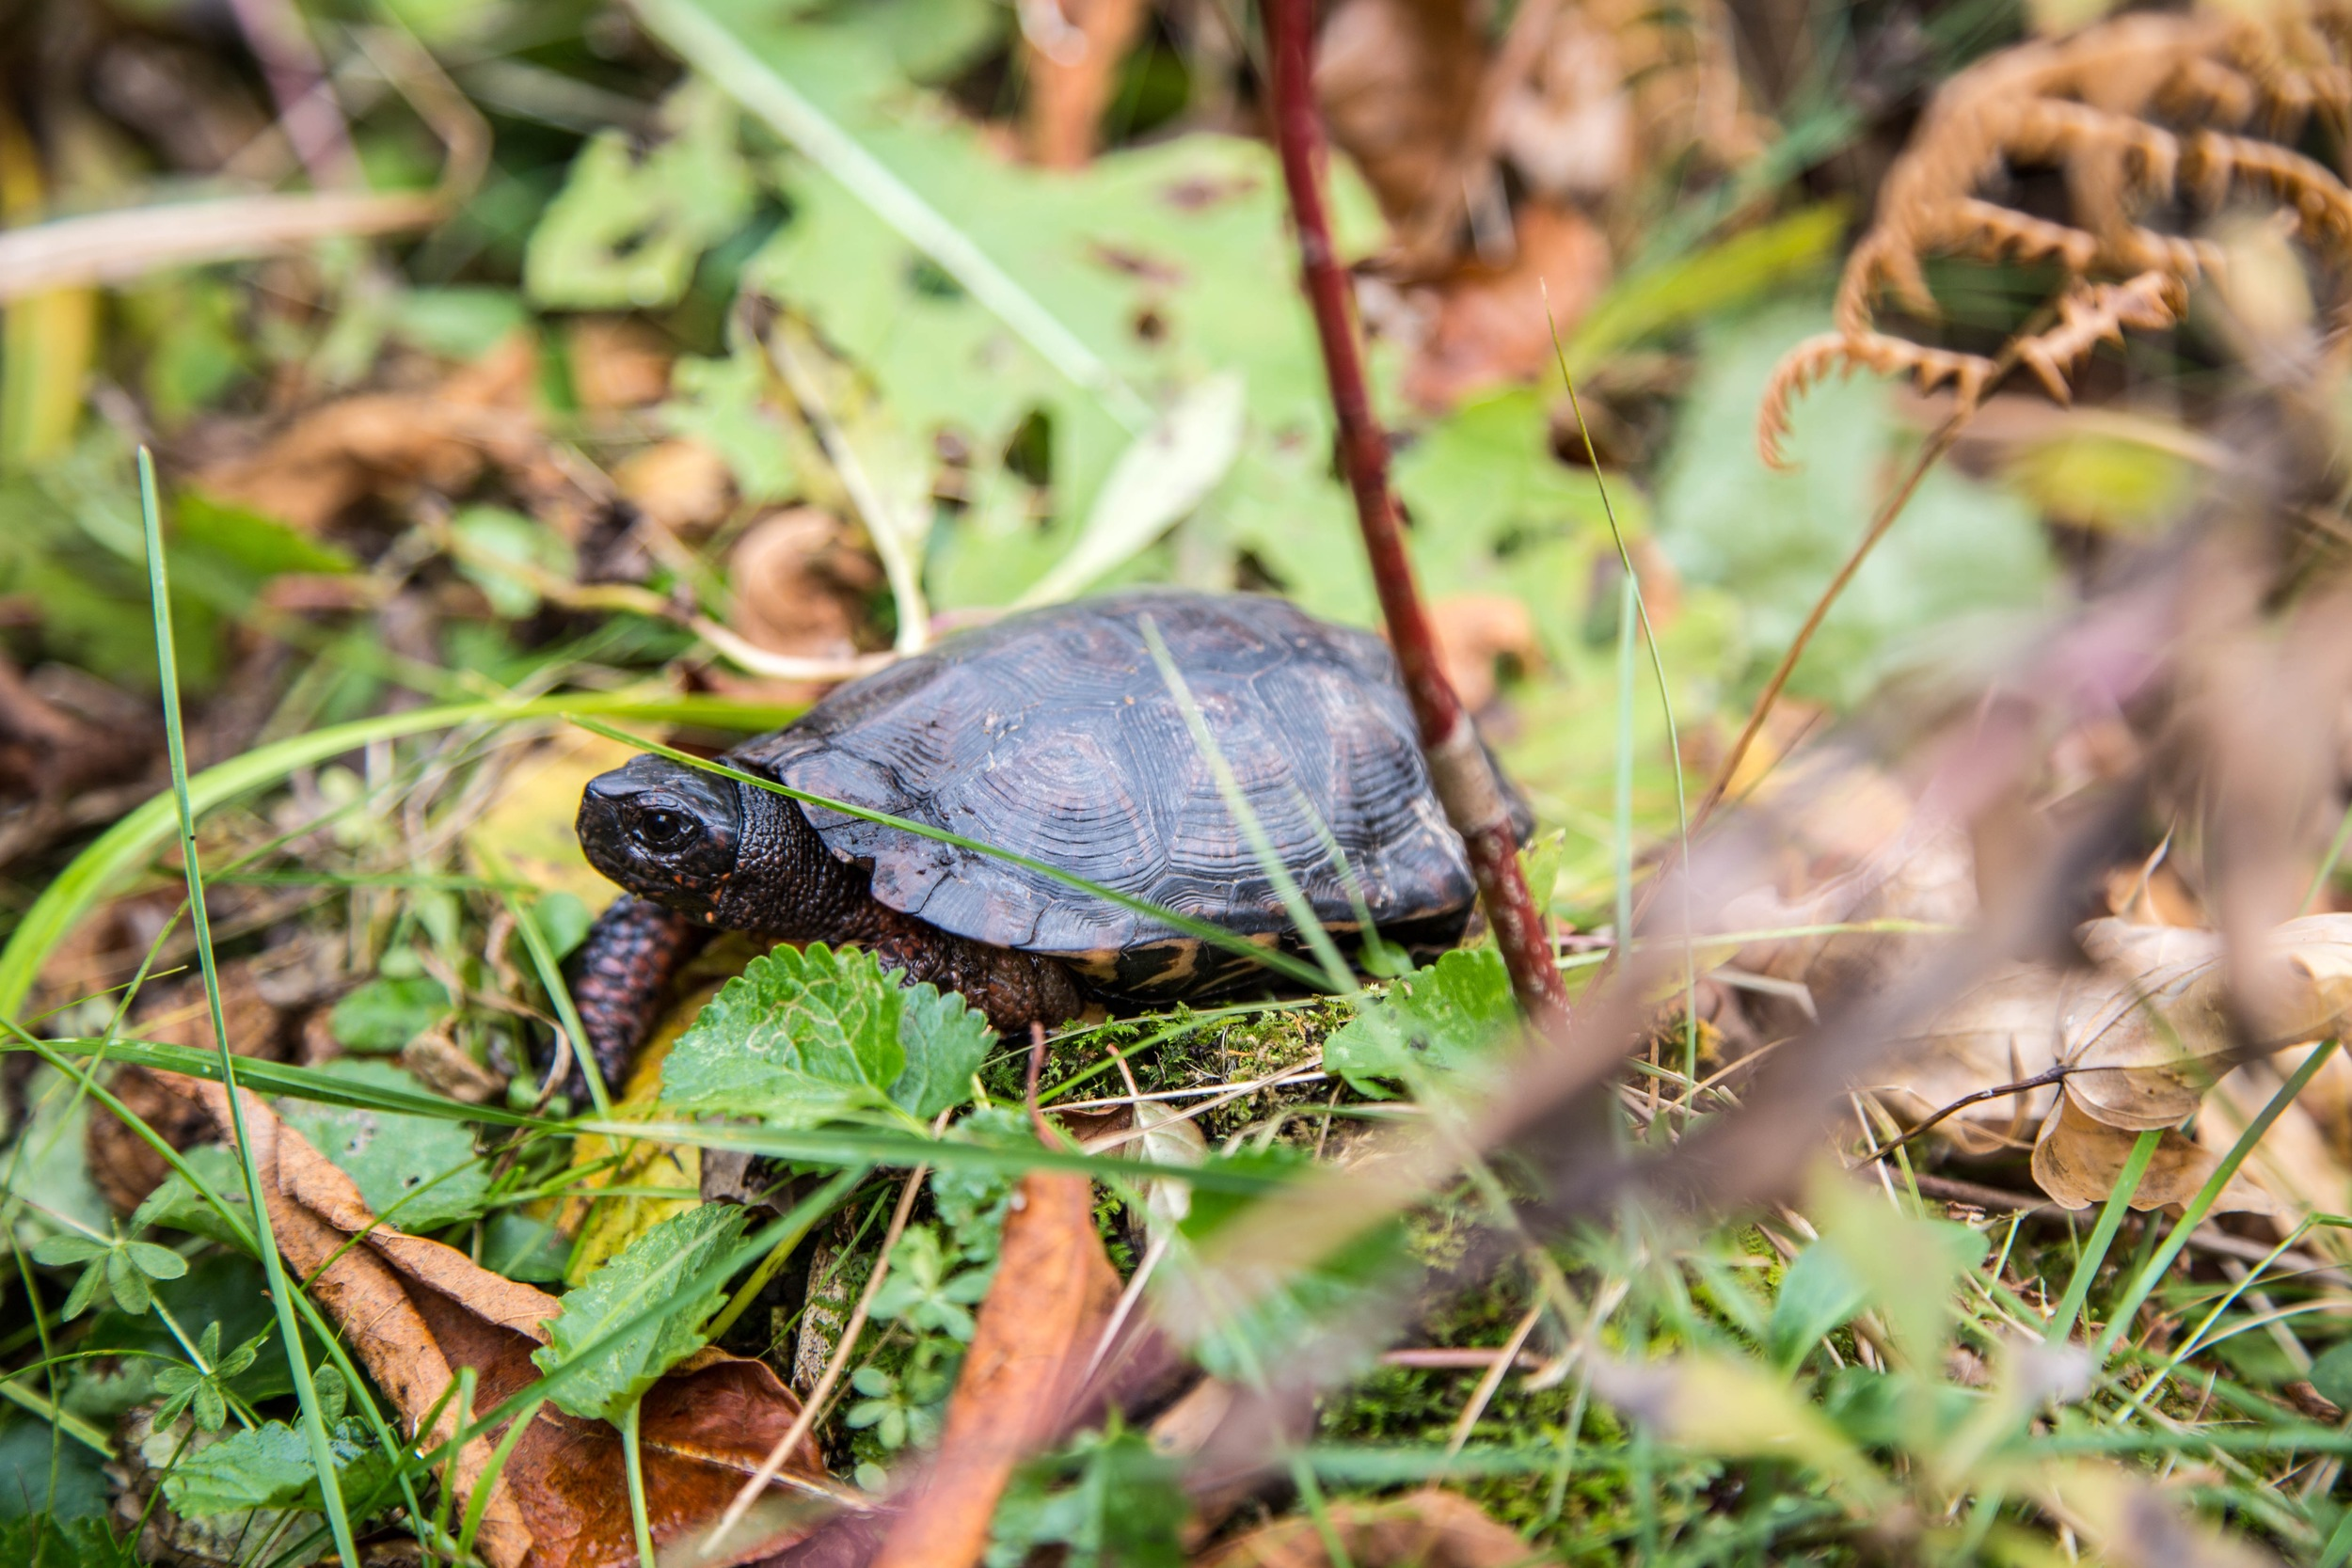 A Bog Turtle in its habitat